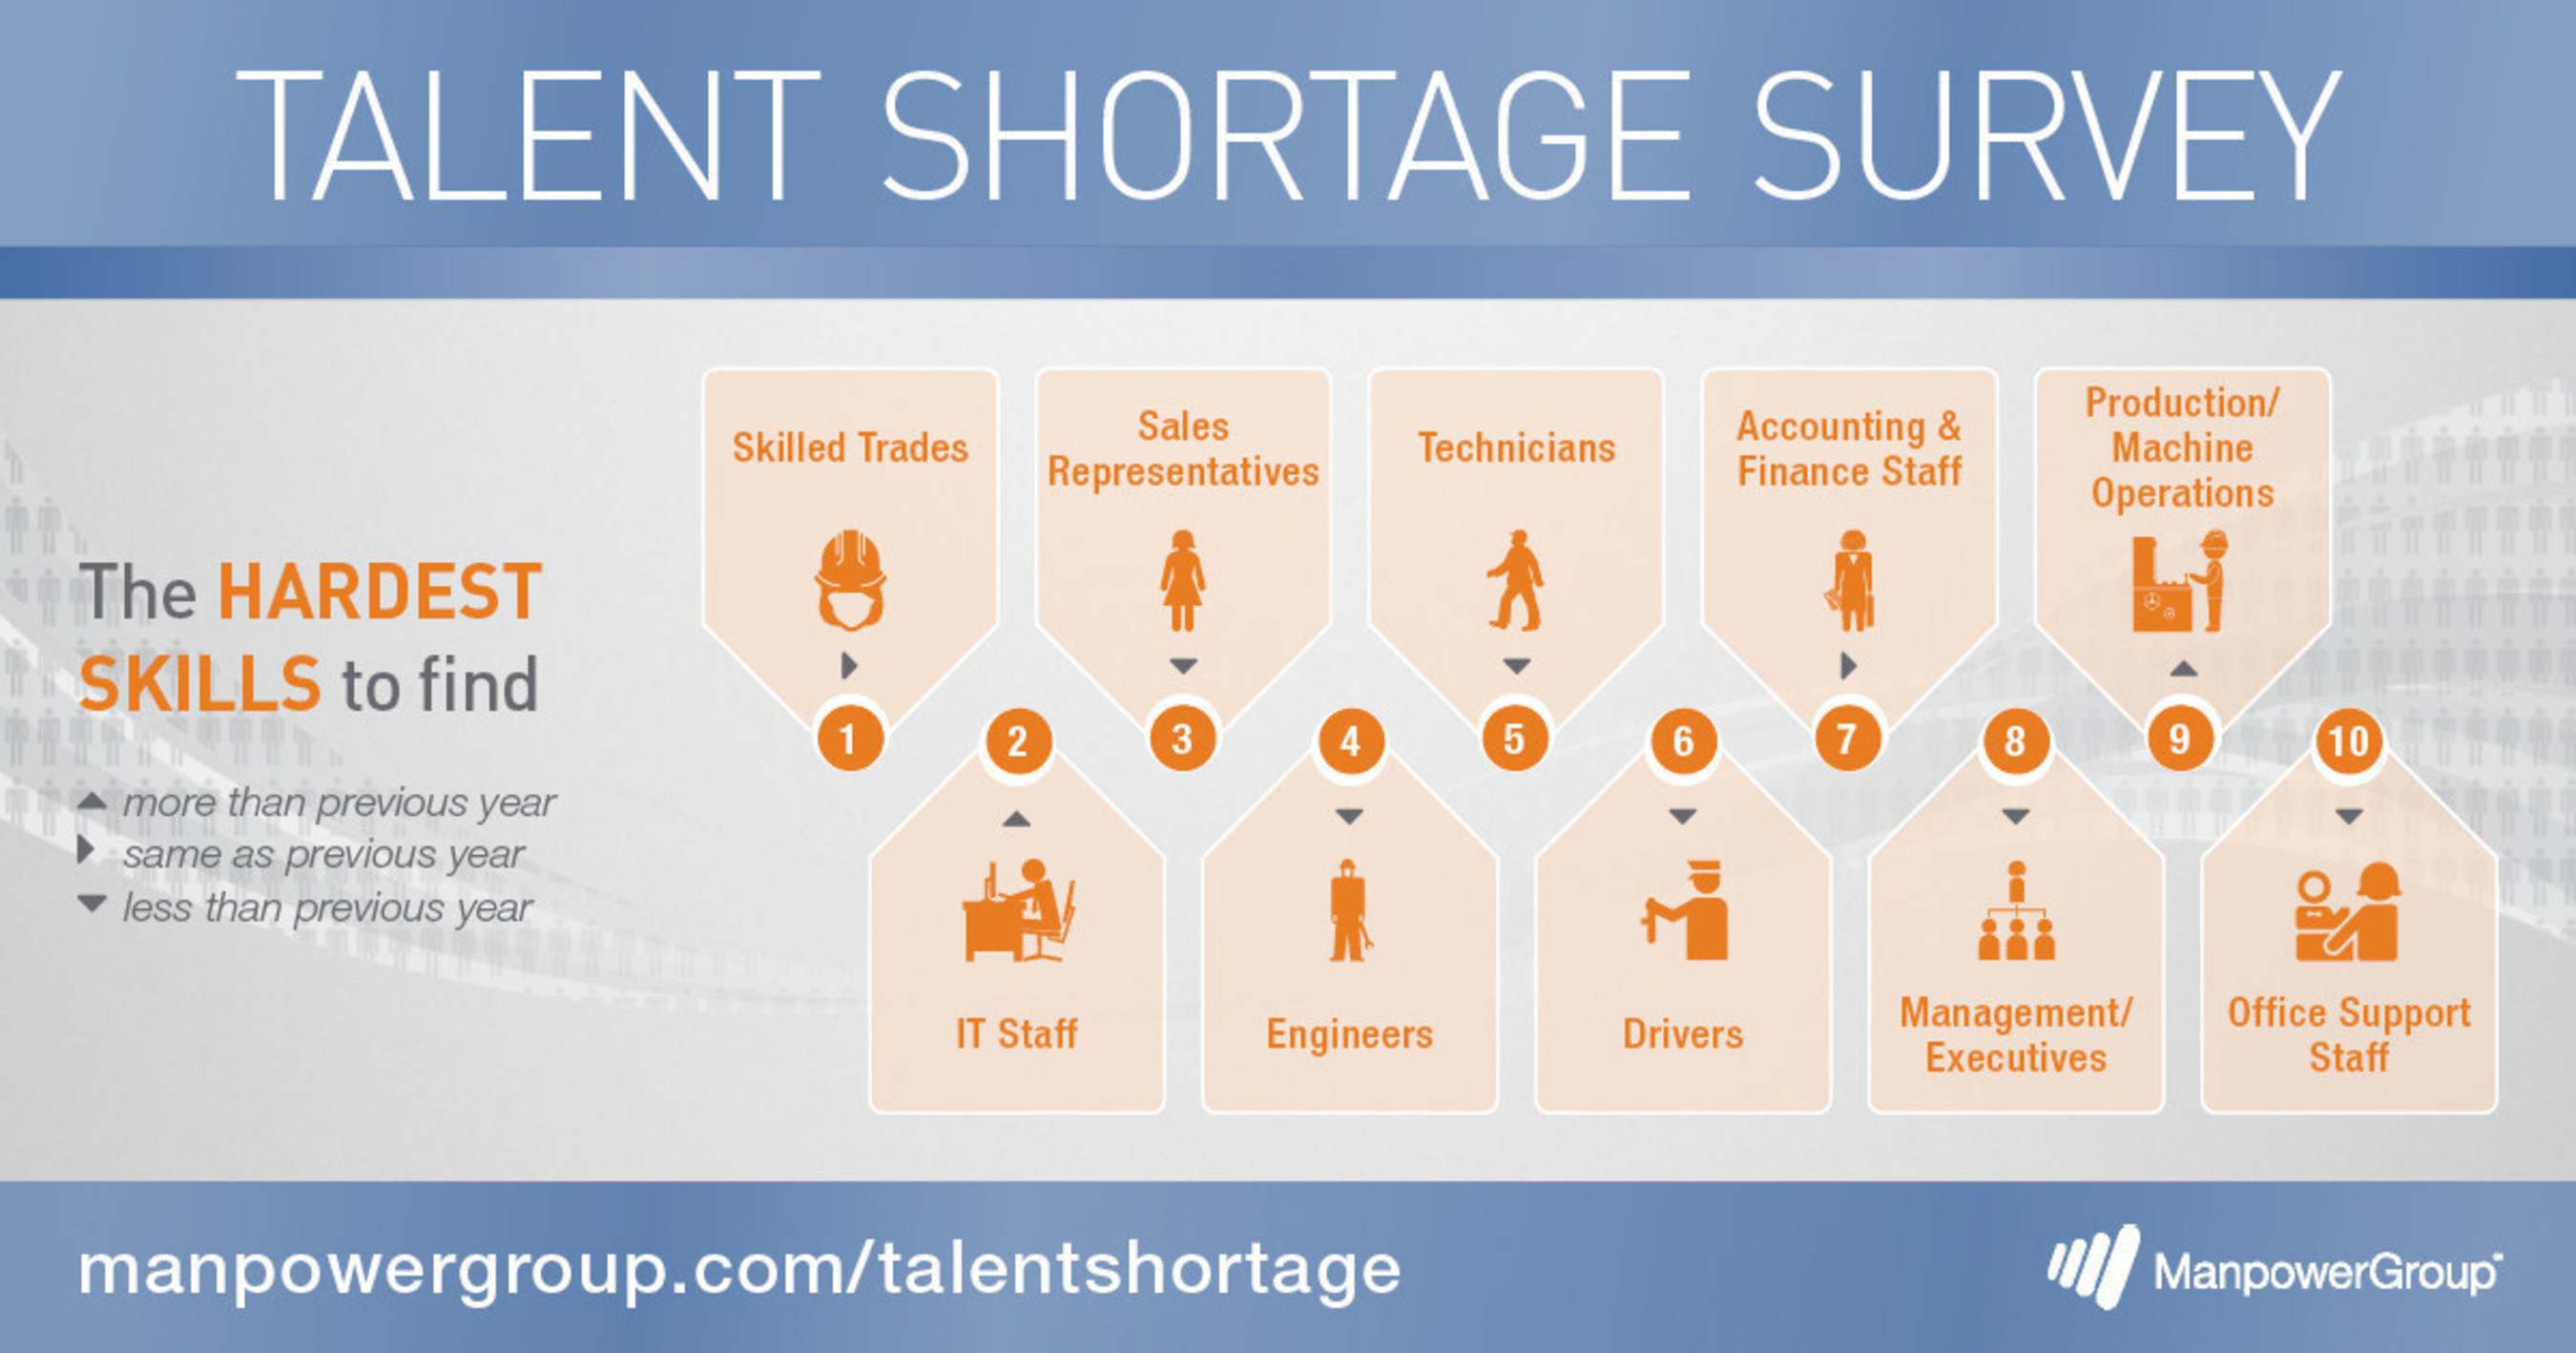 IT roles rank the second hardest to fill globally, according to the 2016 ManpowerGroup Talent Shortage Survey.